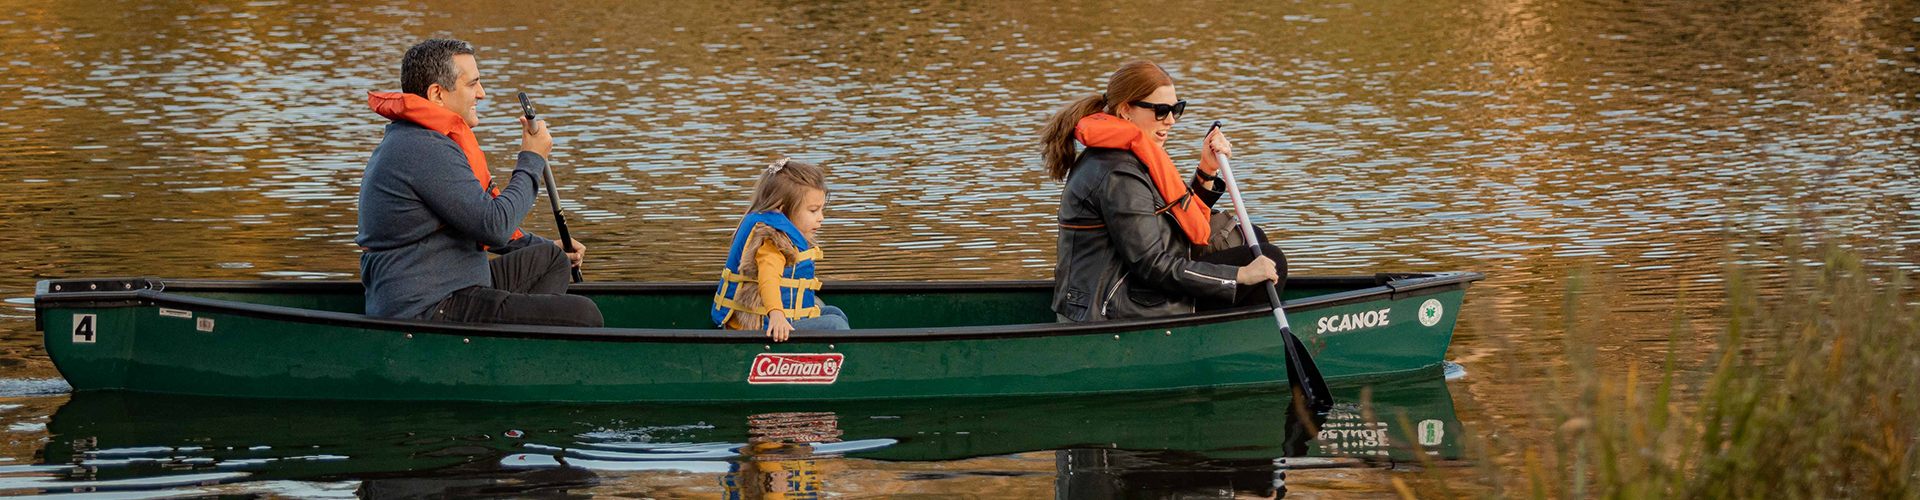 ncal-boating-in-the-park